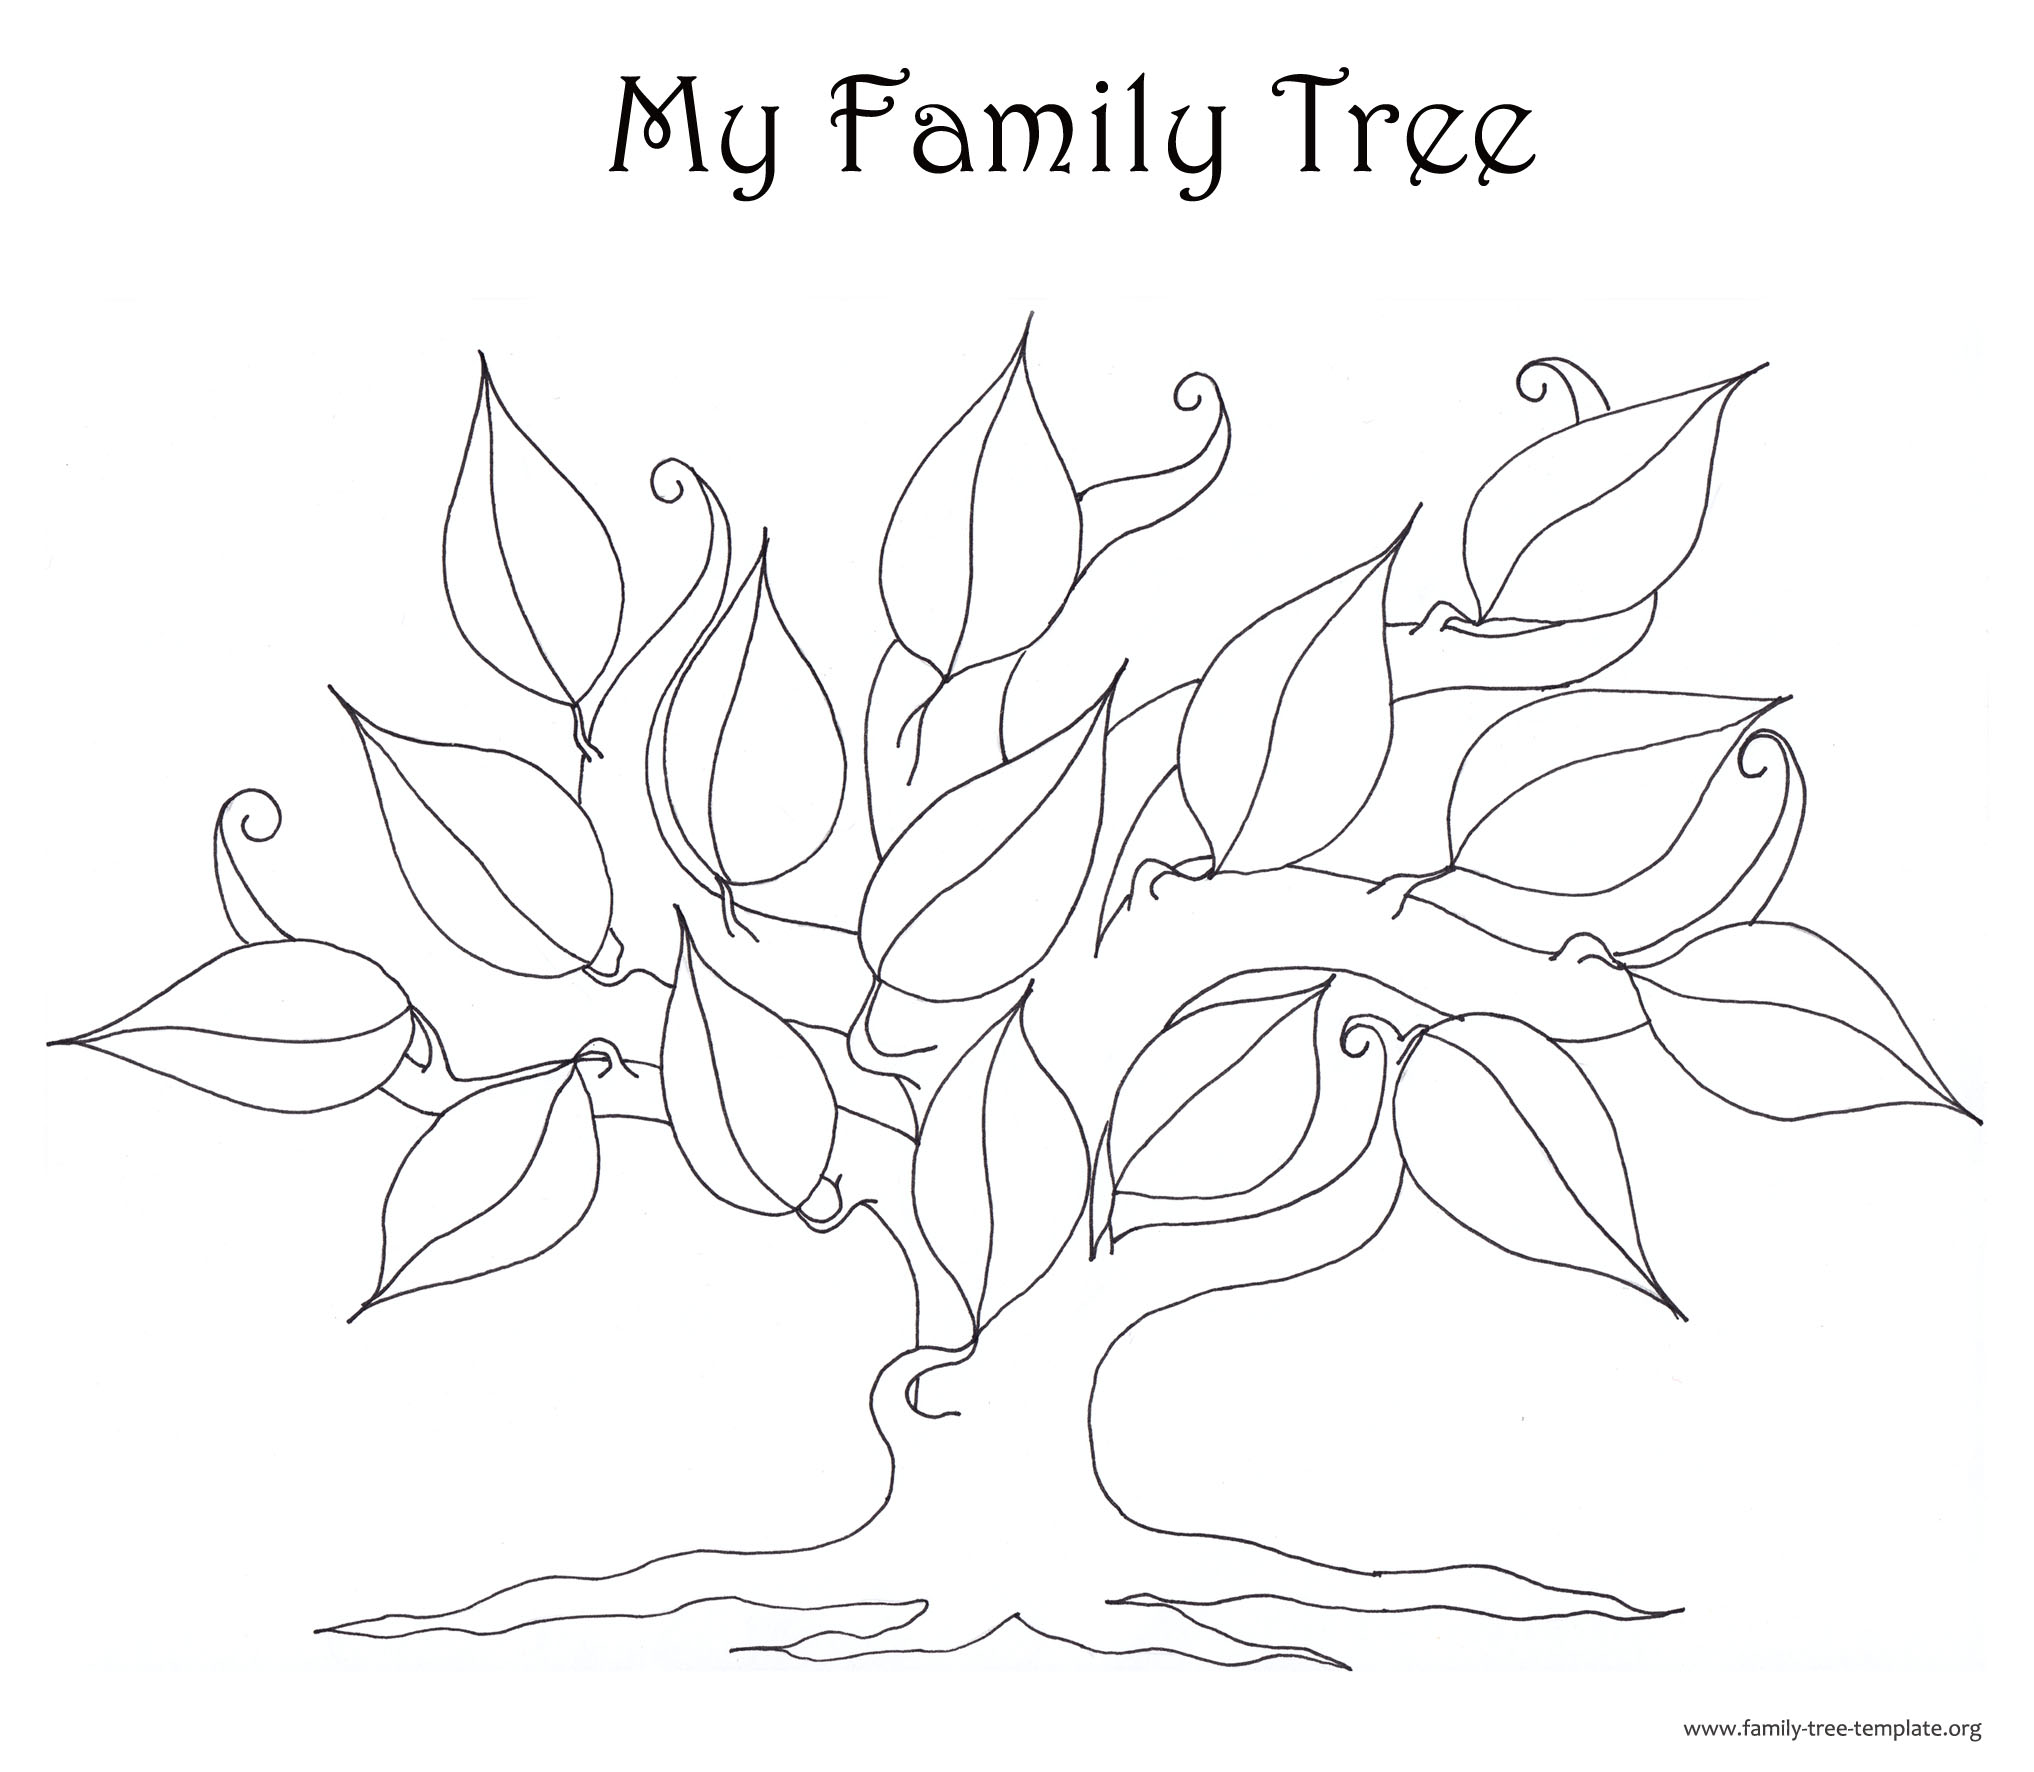 Fun tree coloring for kids